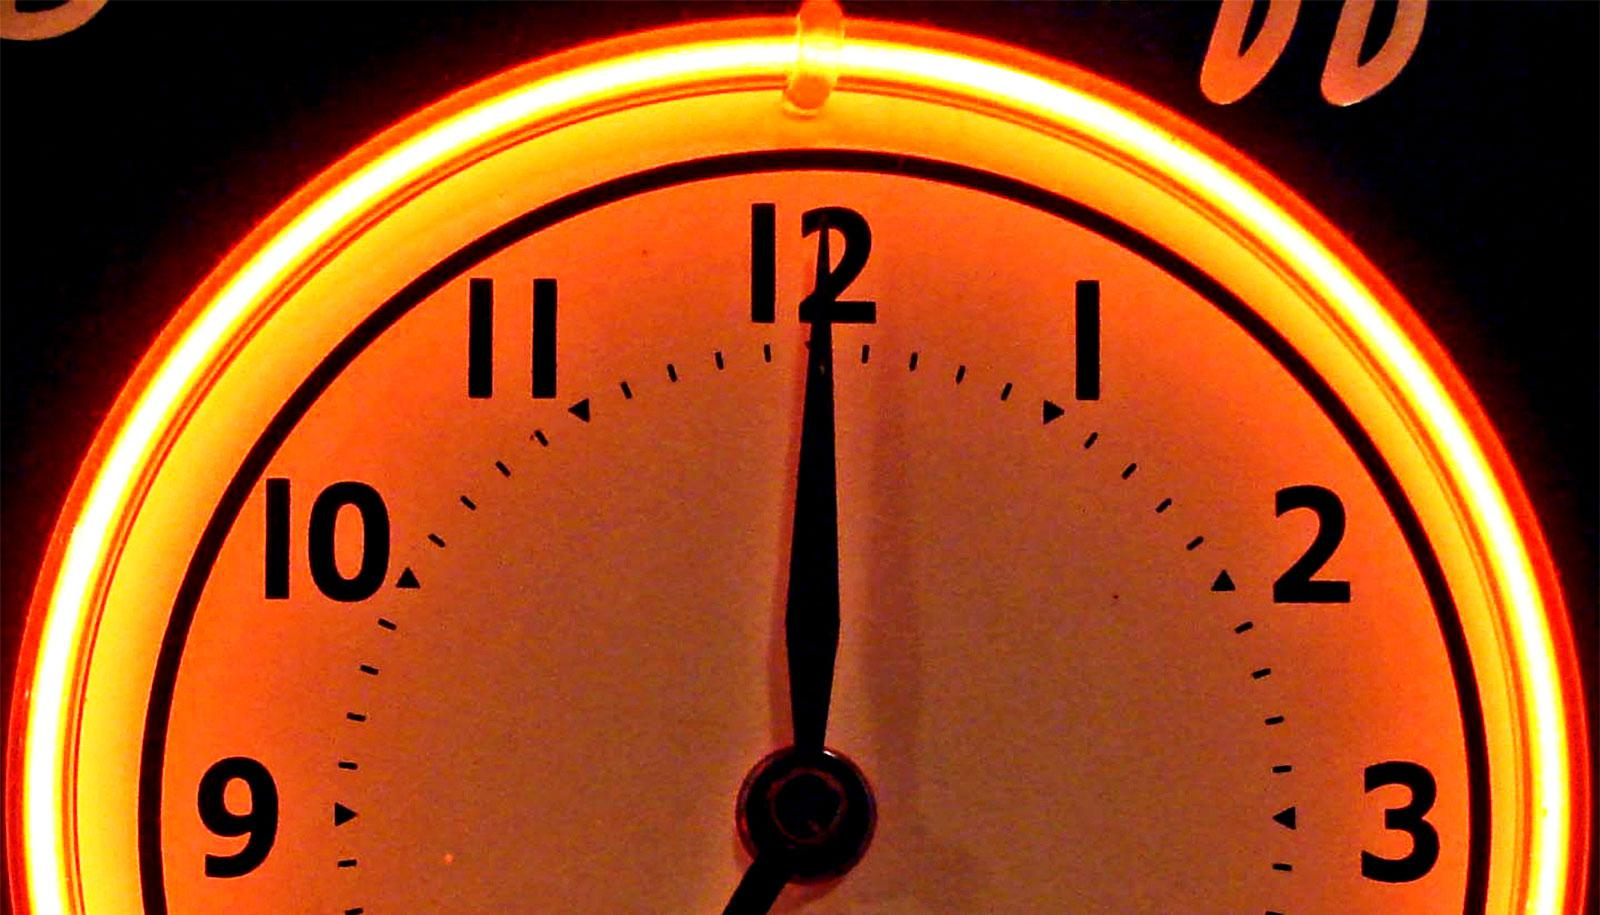 A clock glows red in neon light